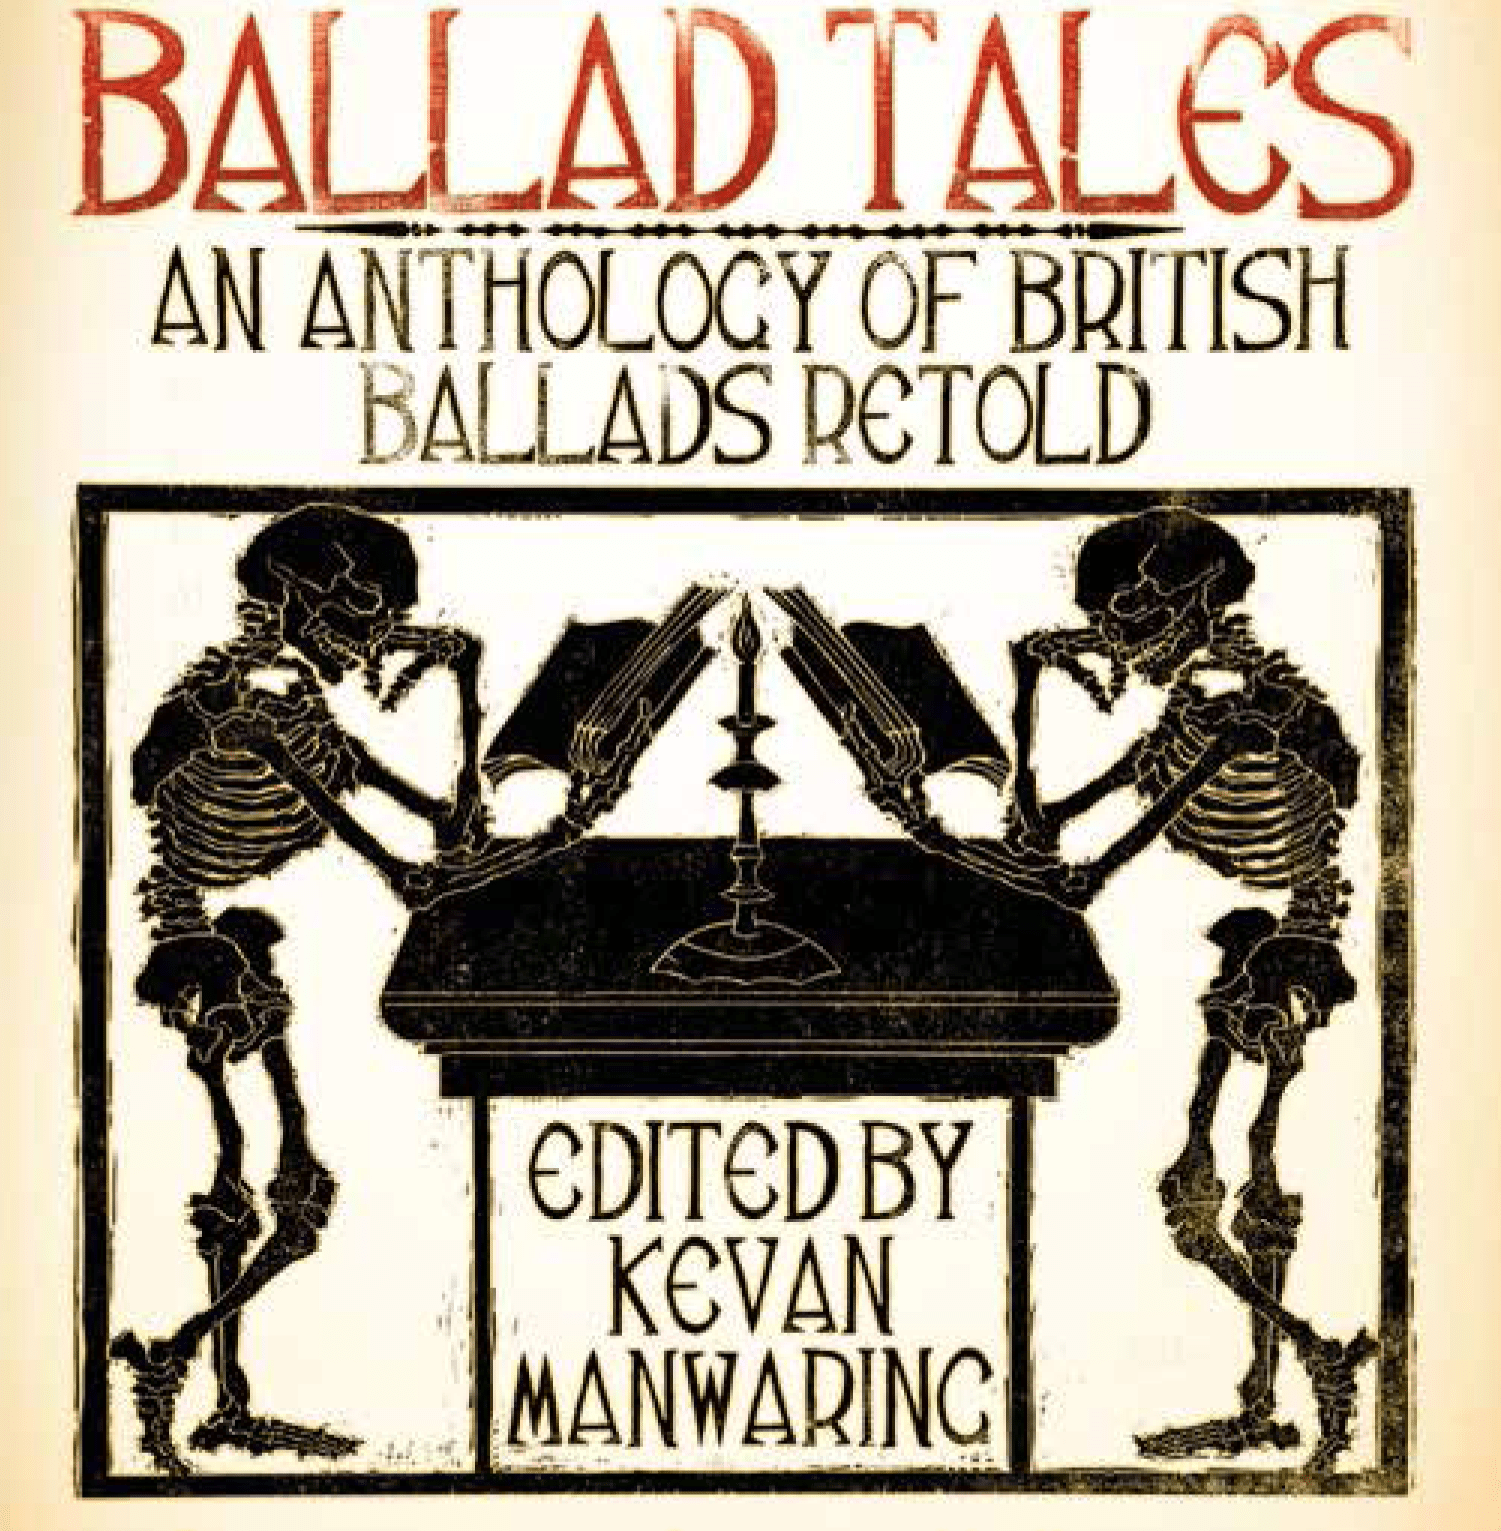 Cover image from Ballad Tales by Kevan Manwaring: Two skeletons reading at a desk